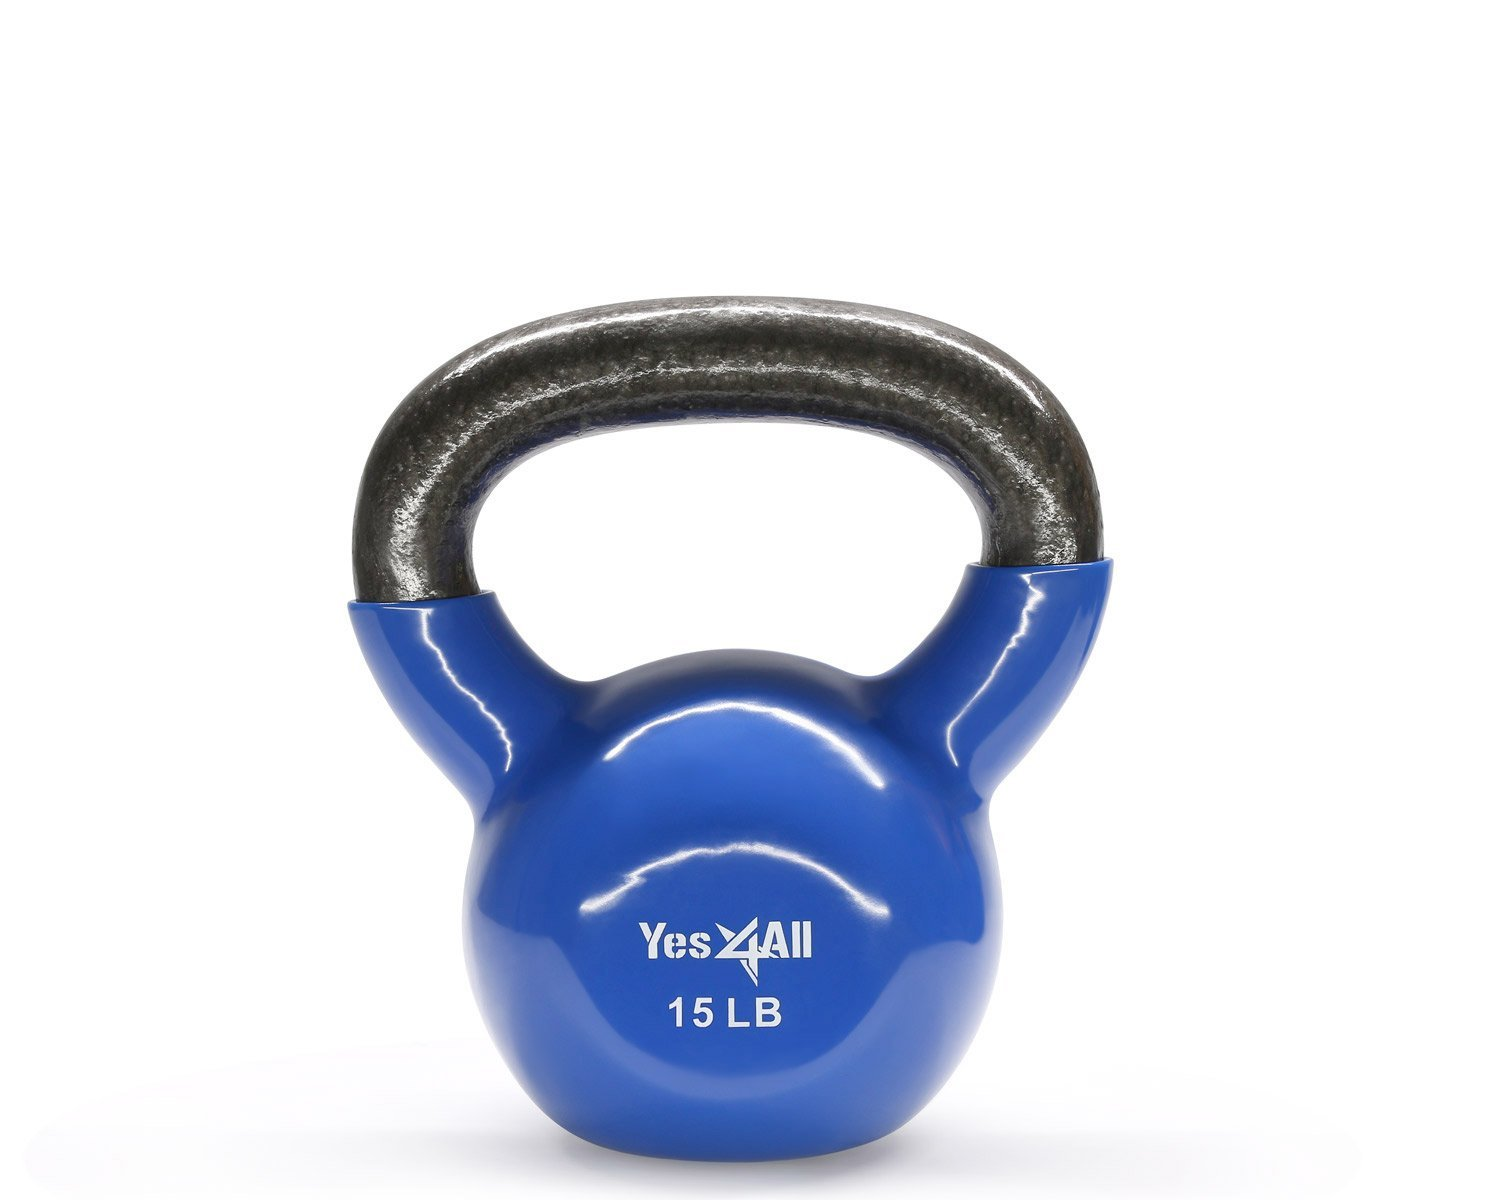 Yes4All Vinyl Coated Kettlebell Weights Set - Great for Full Body Workout and Strength Training - Vinyl Kettlebell 15 lbs by Yes4All (Image #2)